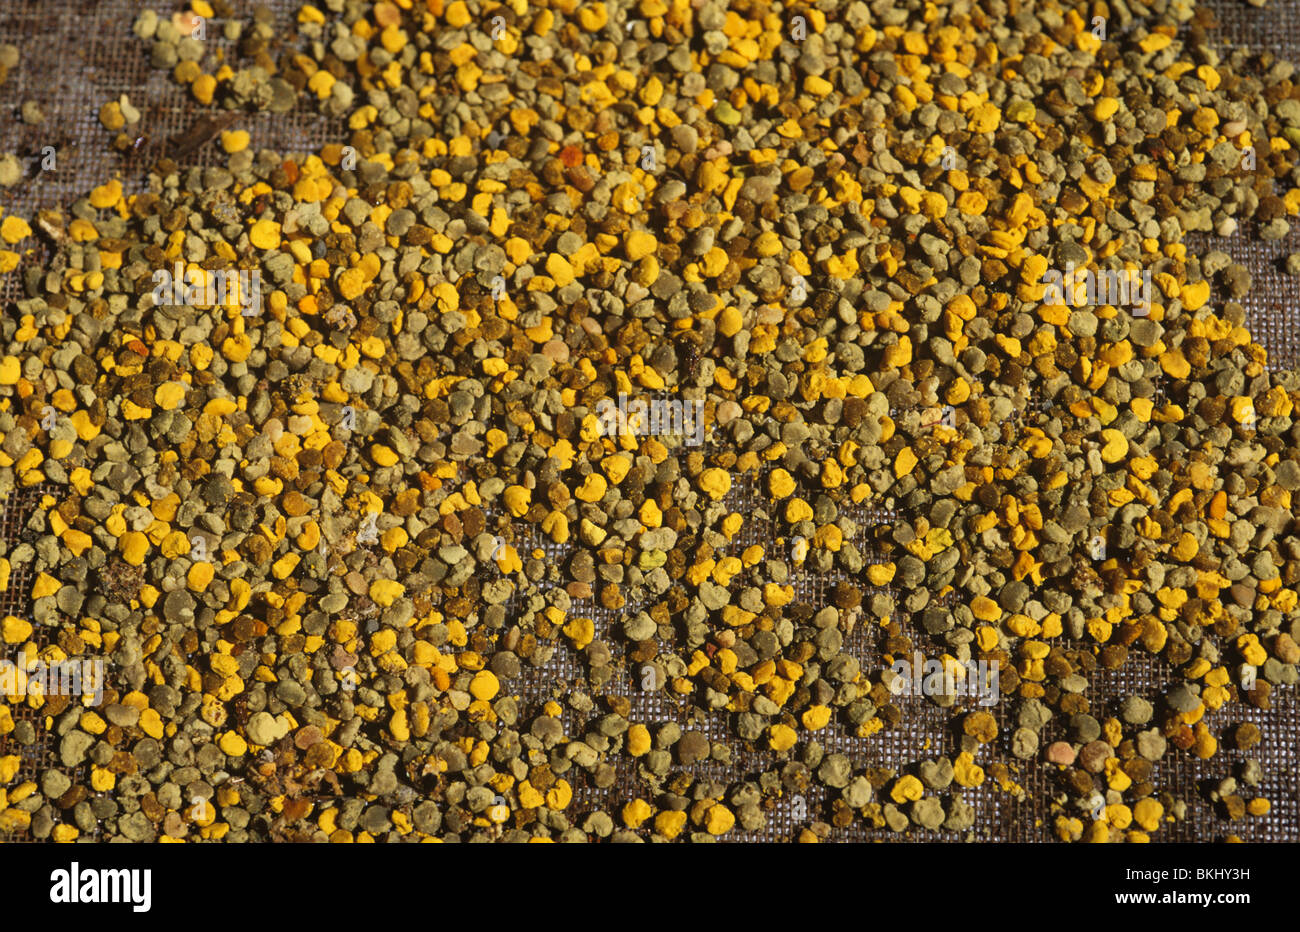 Worker honey bees (Apis mellifera) pollen pellets in hive pollen trap - Stock Image